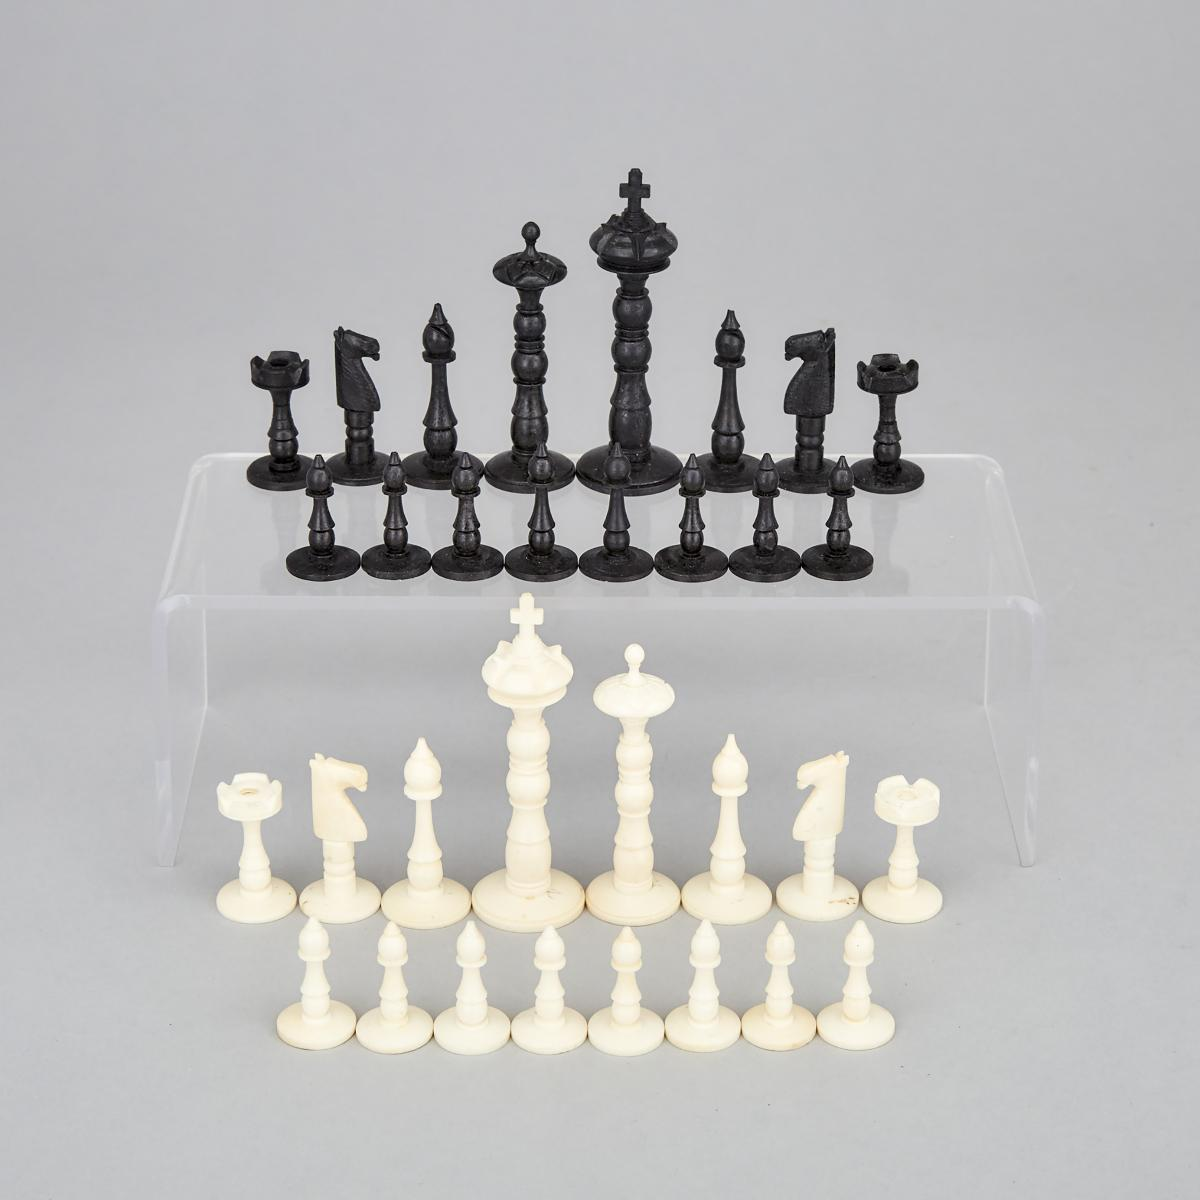 Lot 37 - Indian Camel Bone Chess Set, early-mid 20th century, height 3.5 in — 8.9 cm